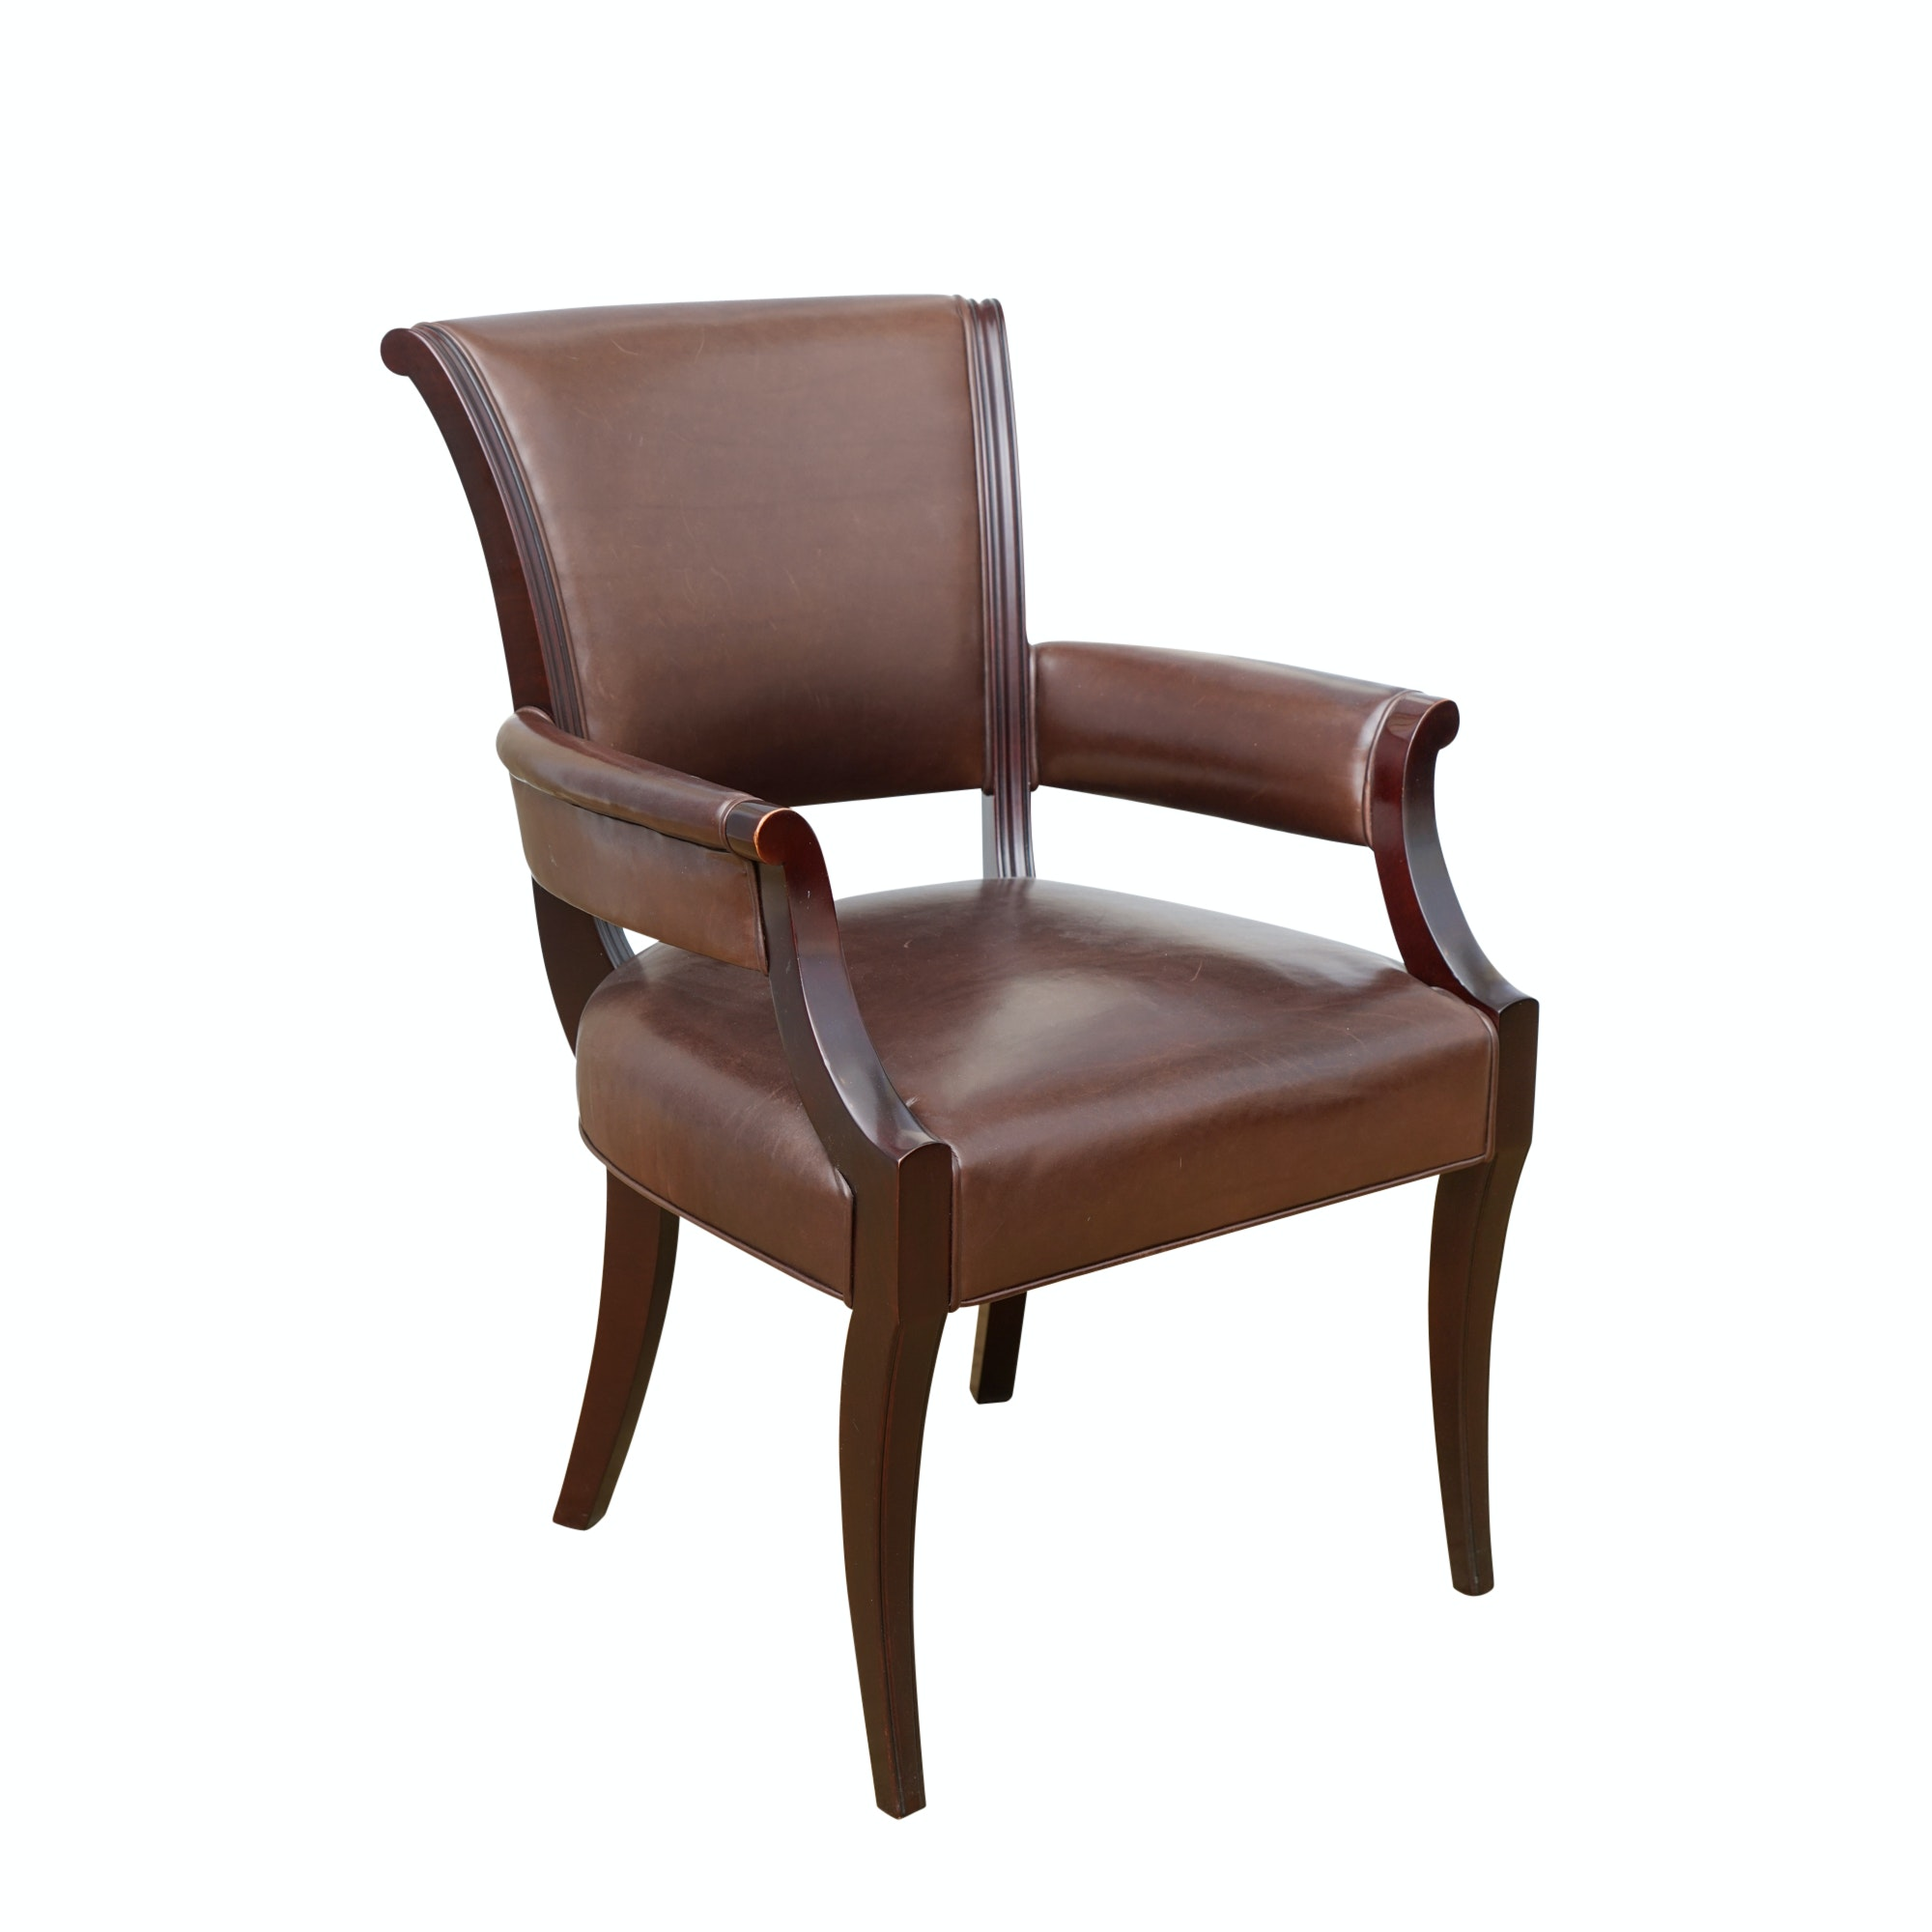 Armchair in Leather Upholstery from Barbara Barry Collection for Baker Furniture